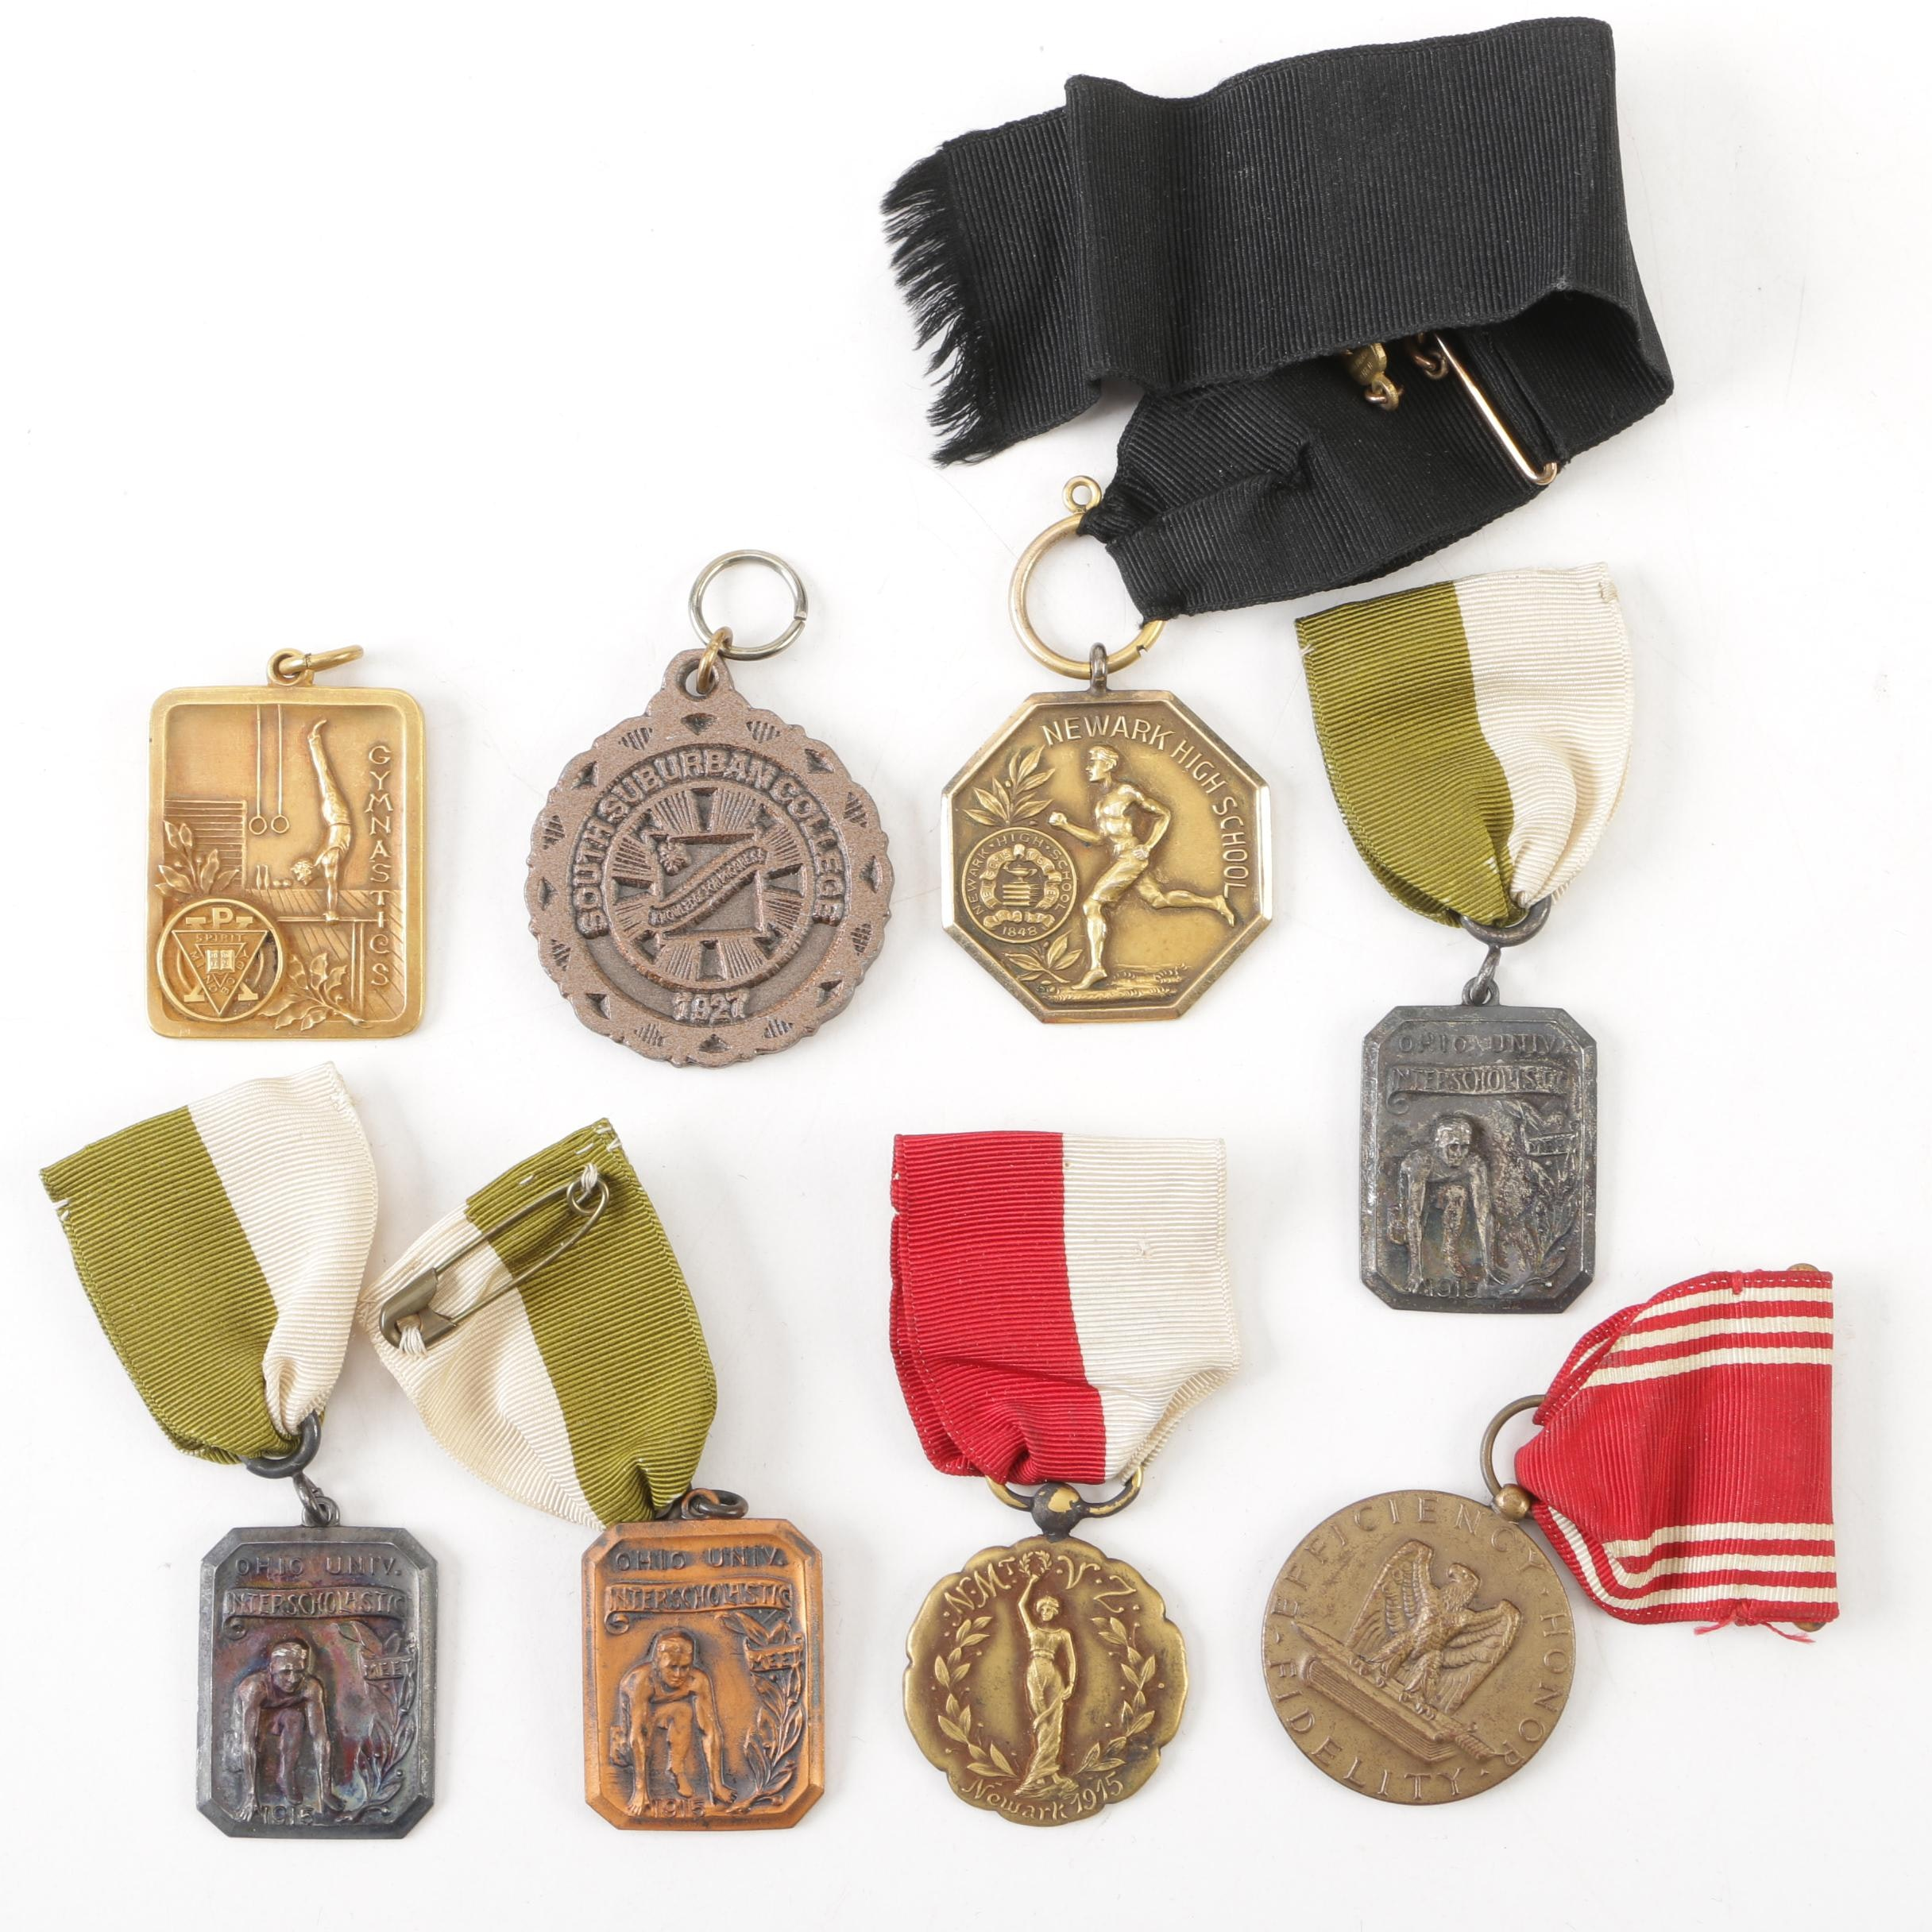 Vintage Sports Medals, 20th Century